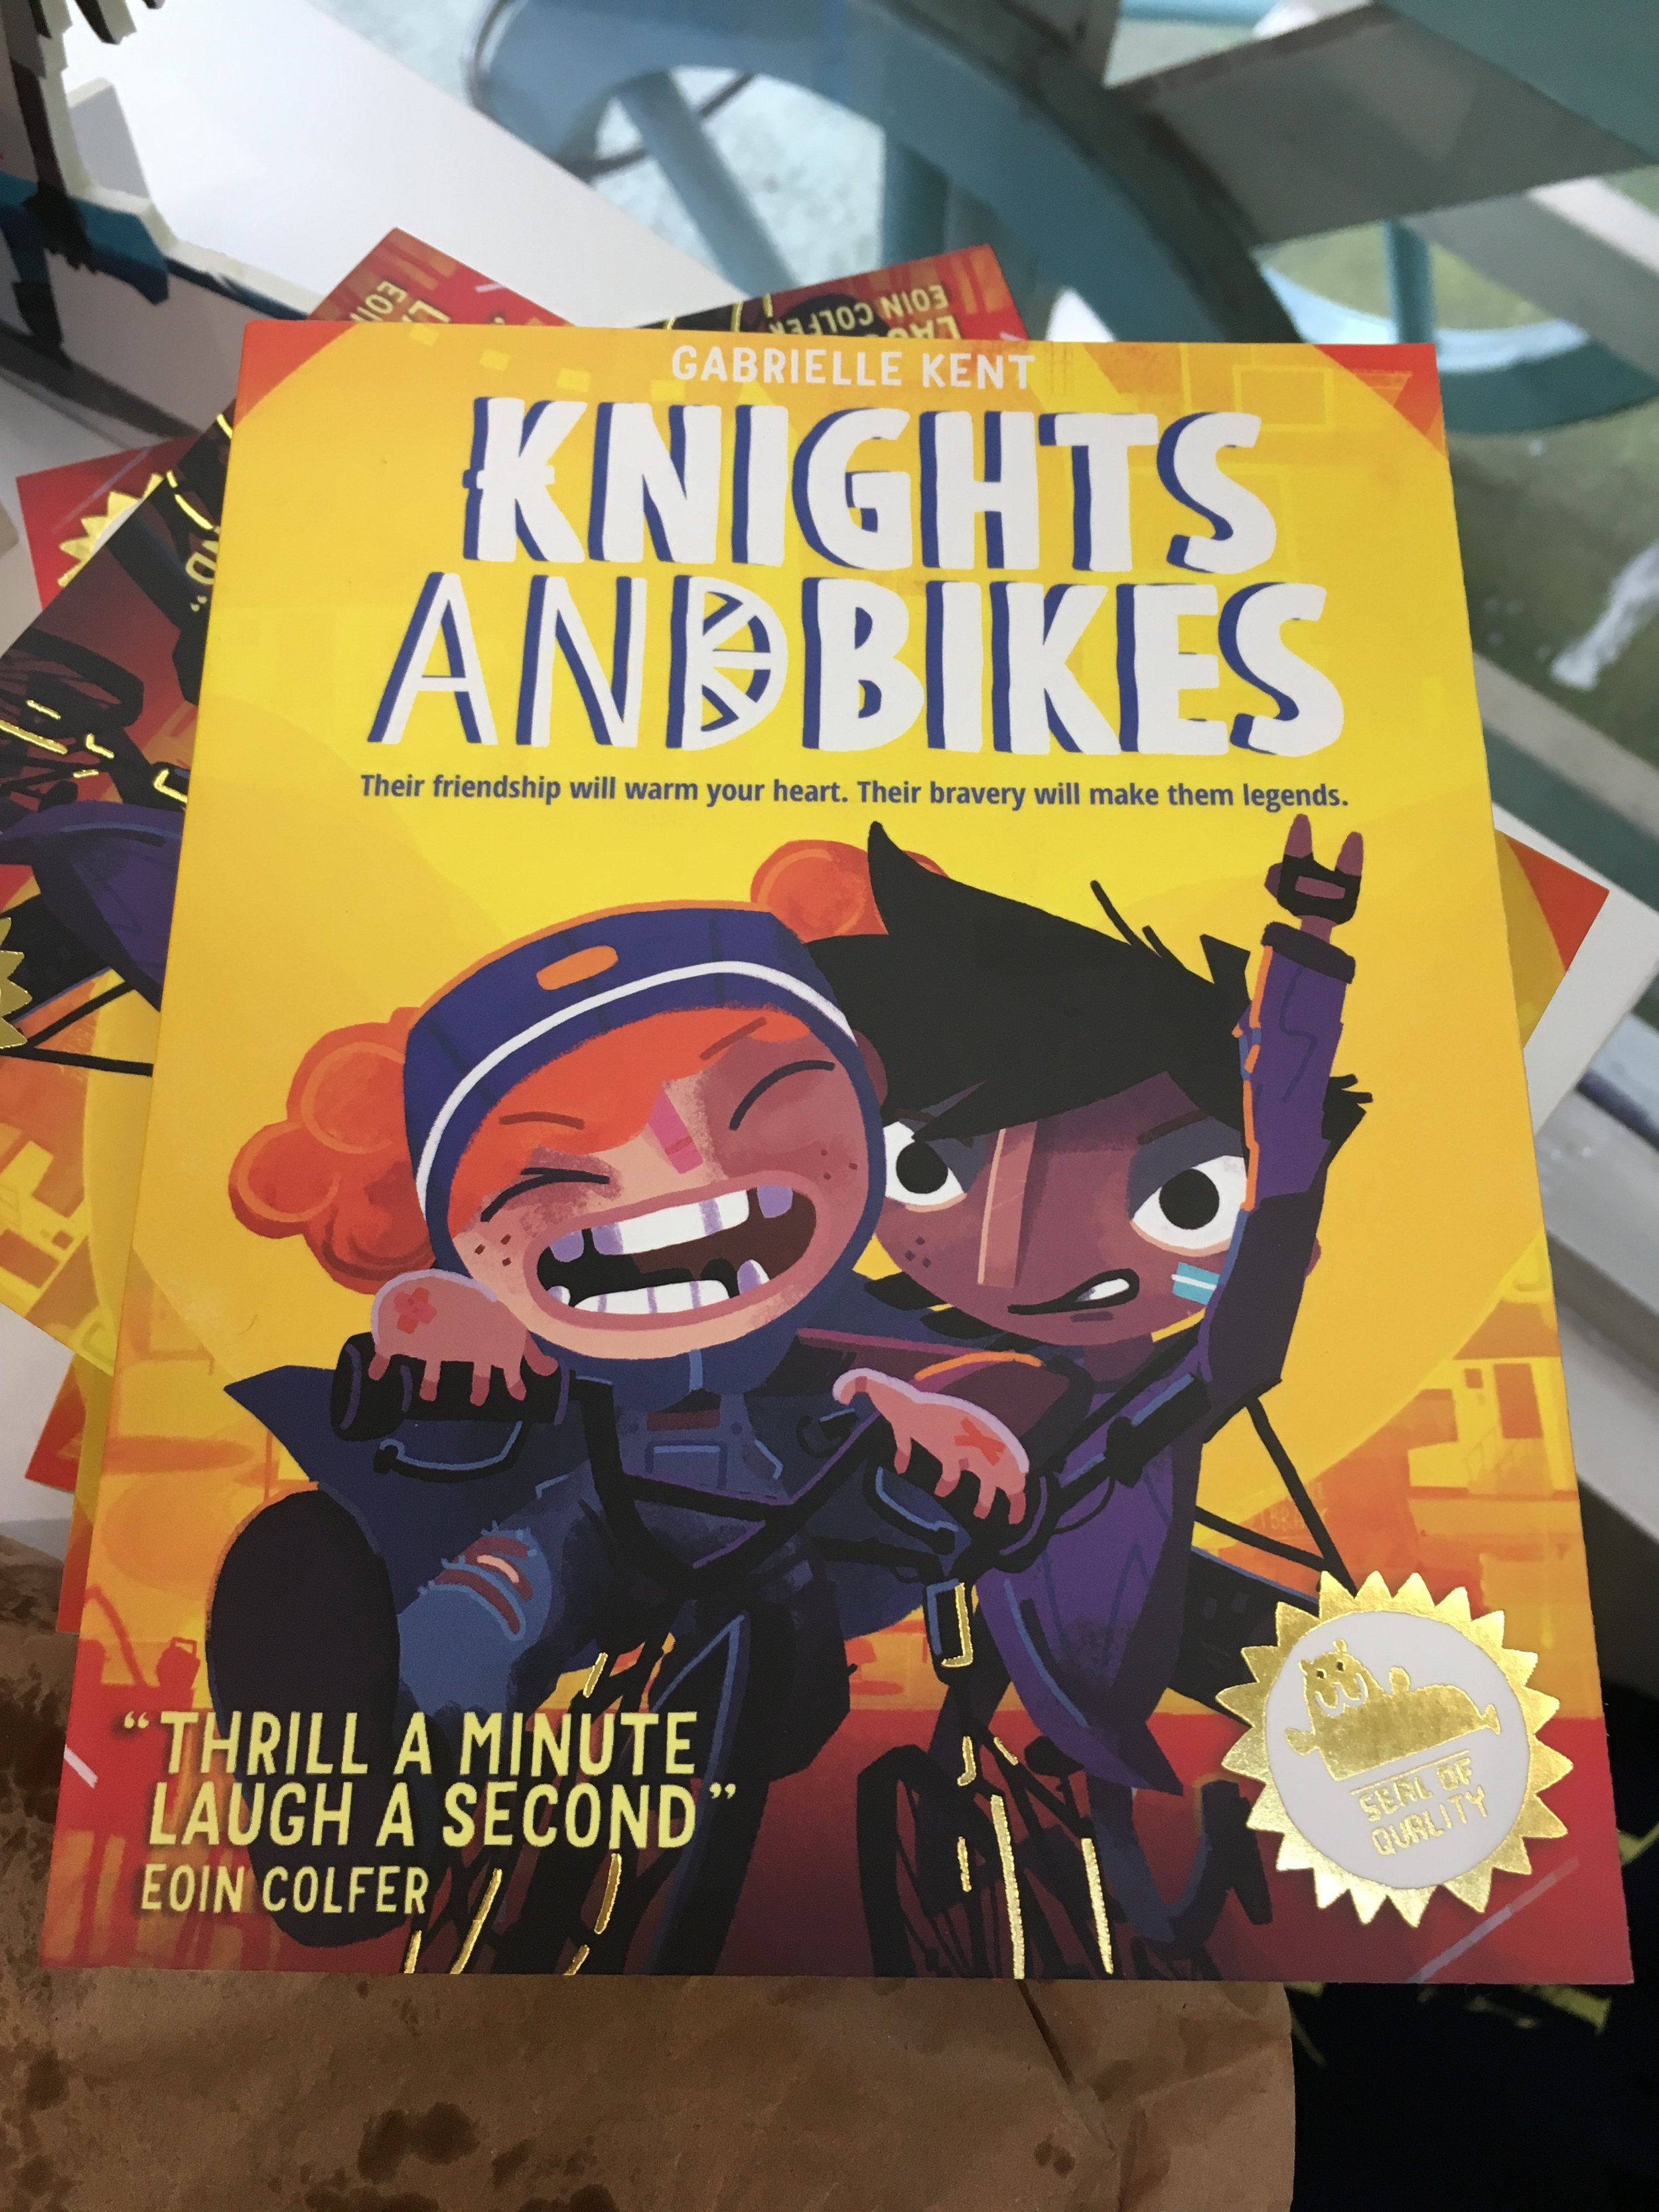 Knights & Bikes - This book is fun, funny and adventurous. Featuring two excellent female leads, this book tells the story of saving your home through friendship and bravery. A complementary computer game launches next year.£6.99Waterstones